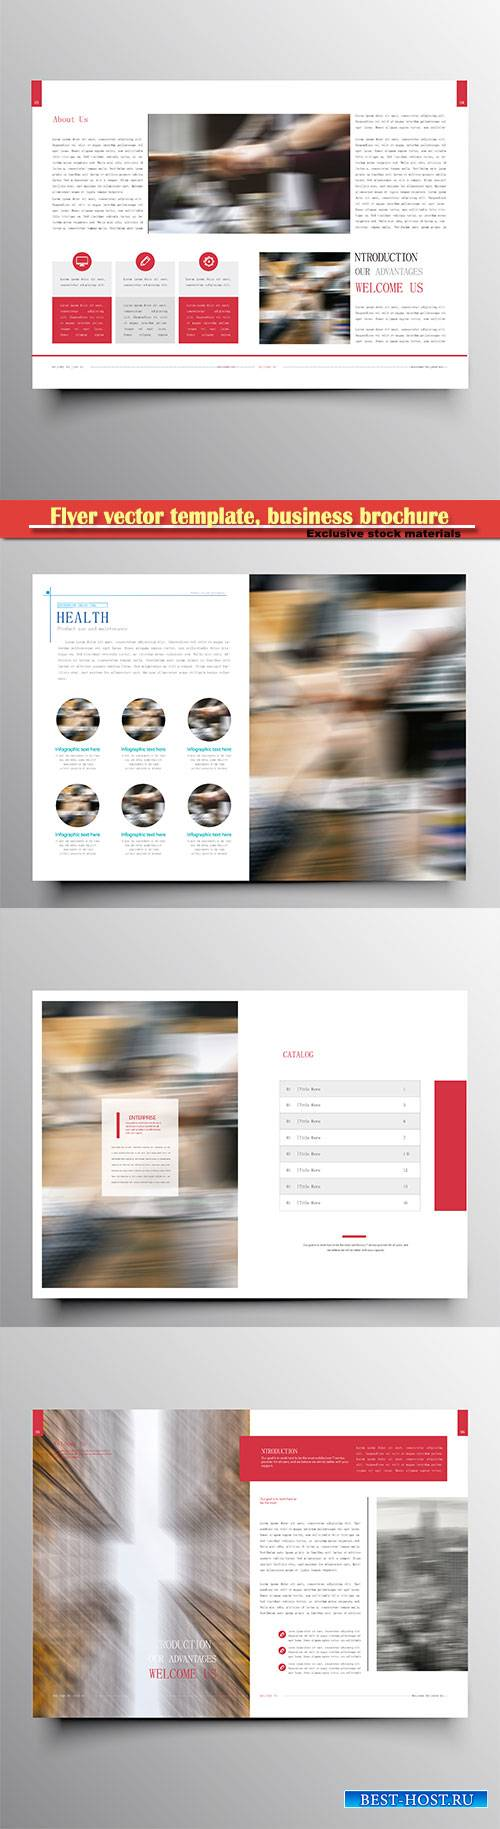 Flyer vector template, business brochure, magazine cover # 32